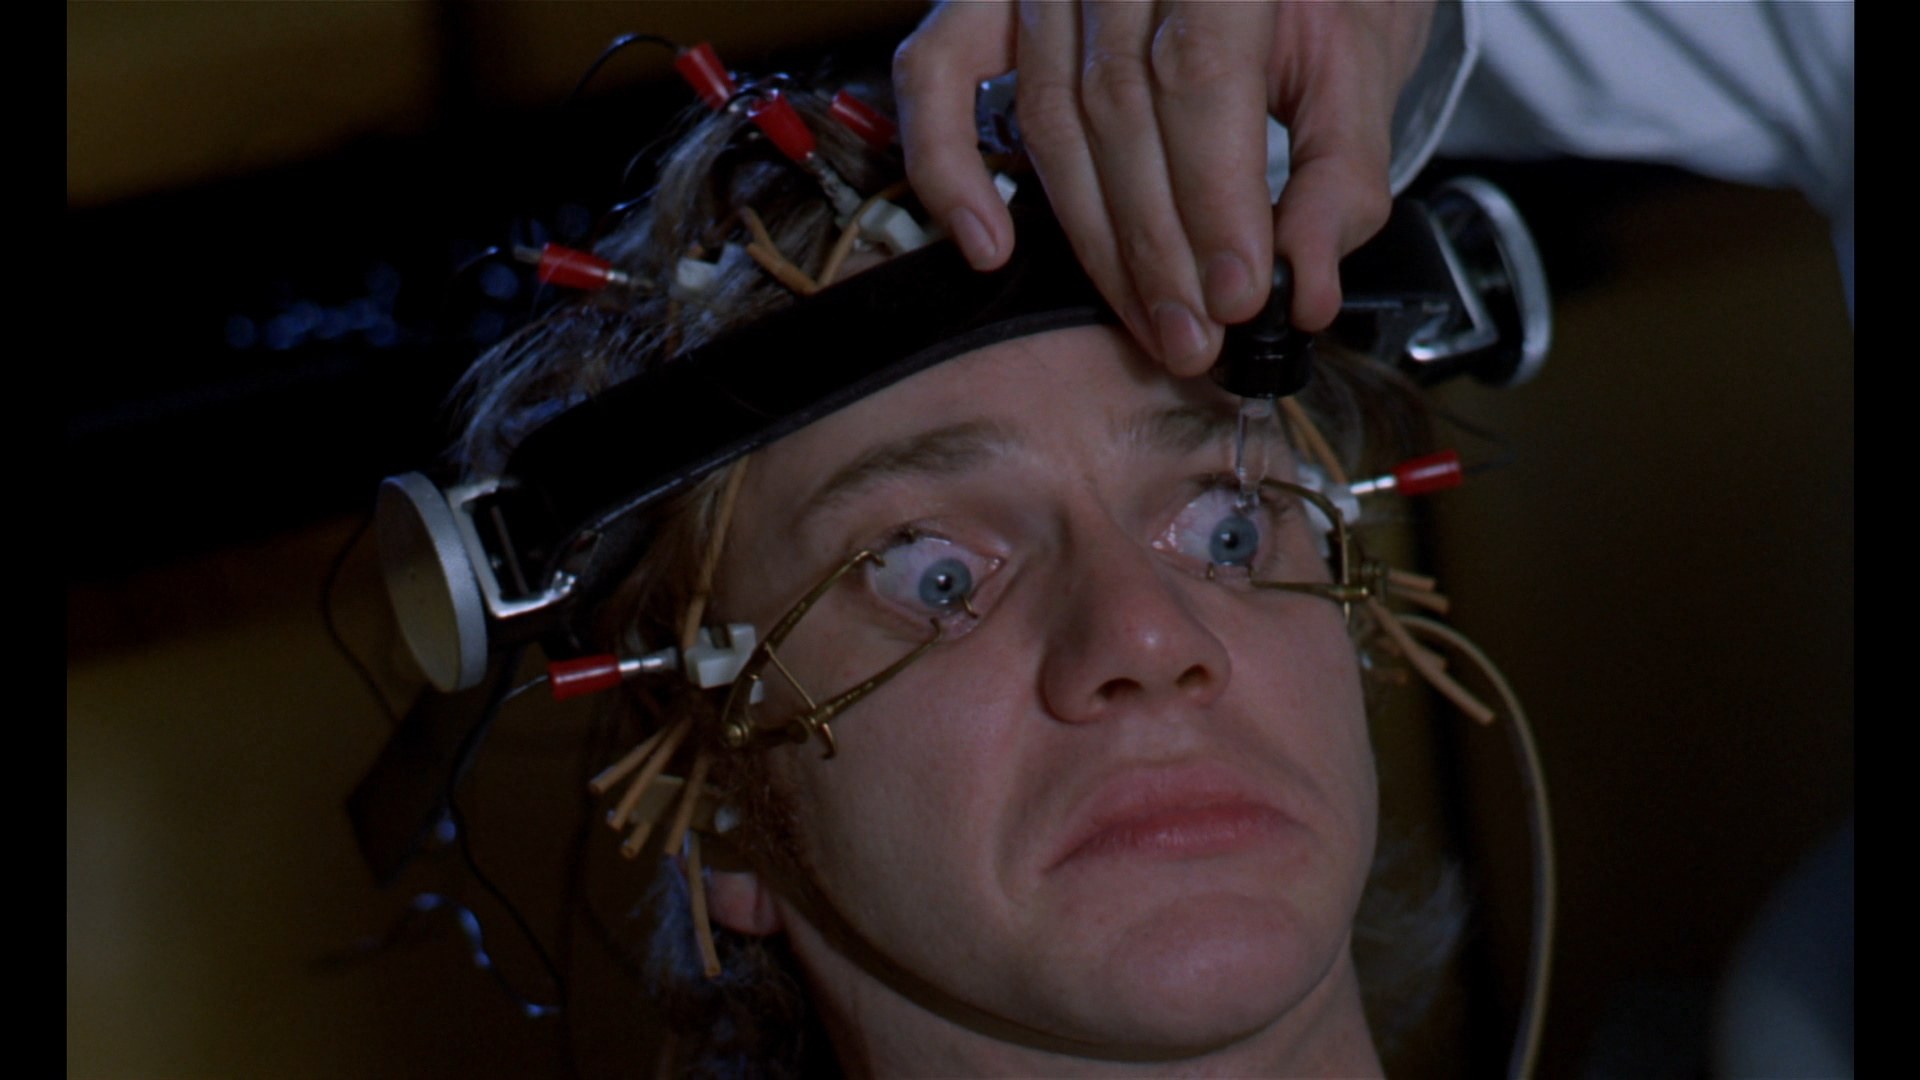 https://i0.wp.com/www.detskerher.dk/files/cinema_blog/wallpaper/widescreen/clockwork_orange_blu-ray_5x.jpg